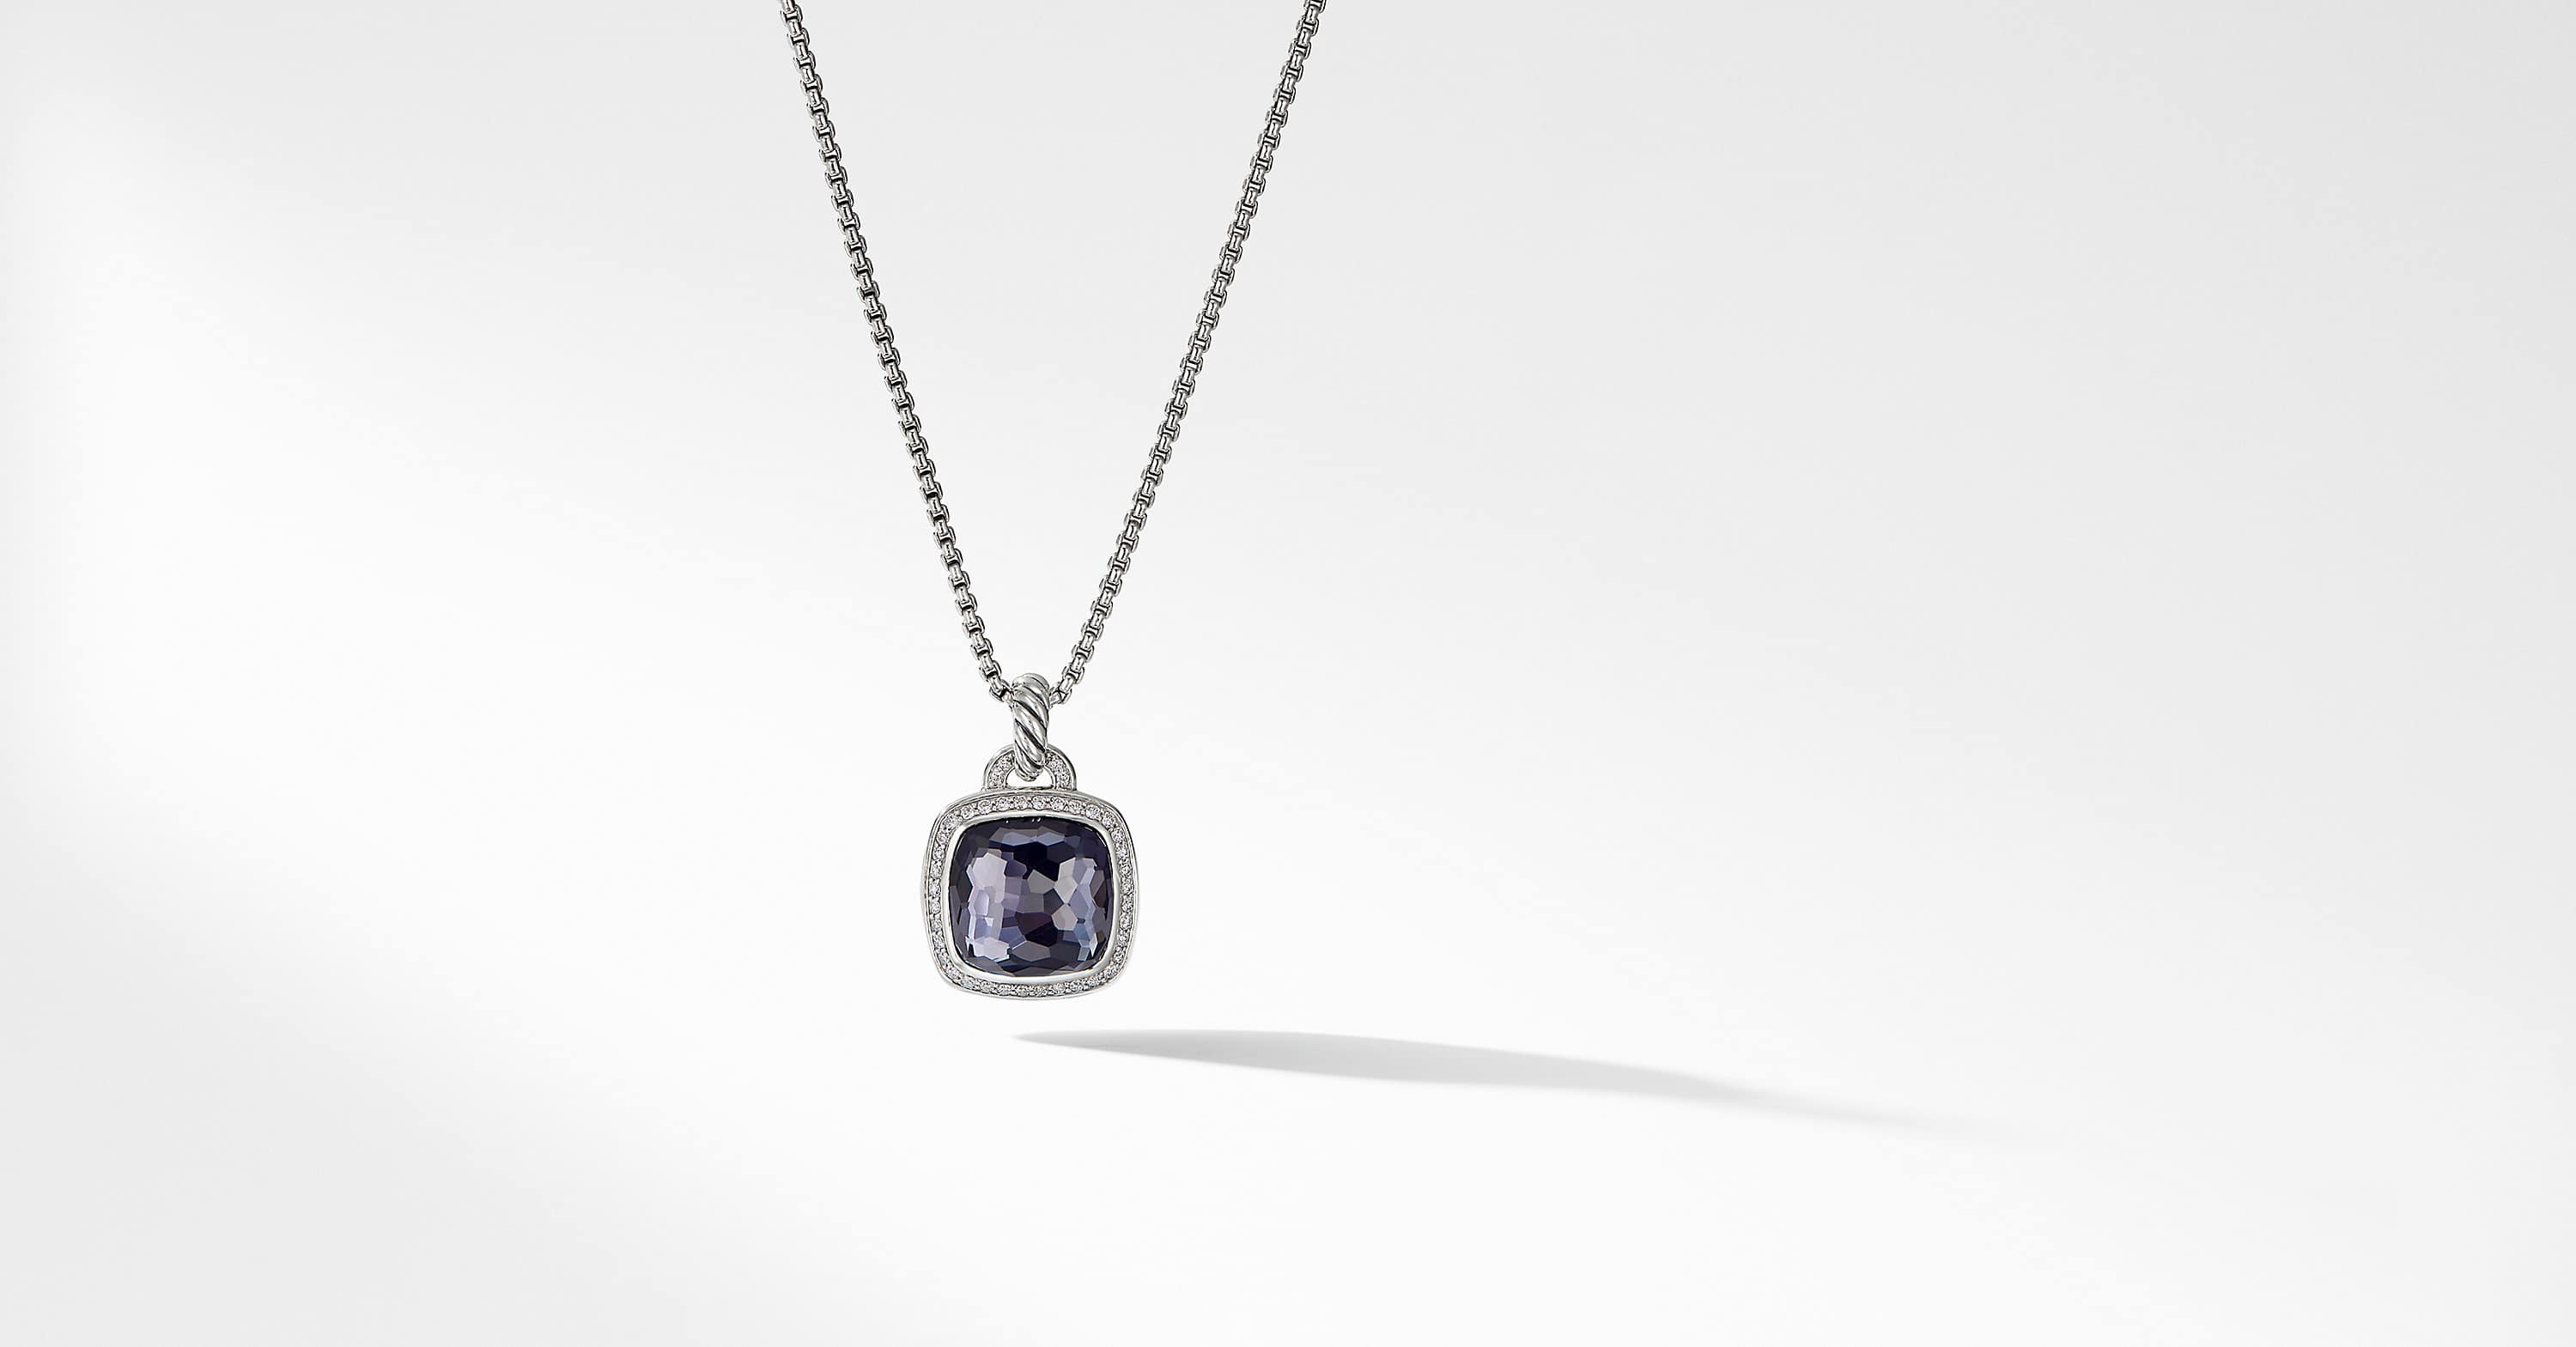 Albion Pendant with Diamonds, 14mm